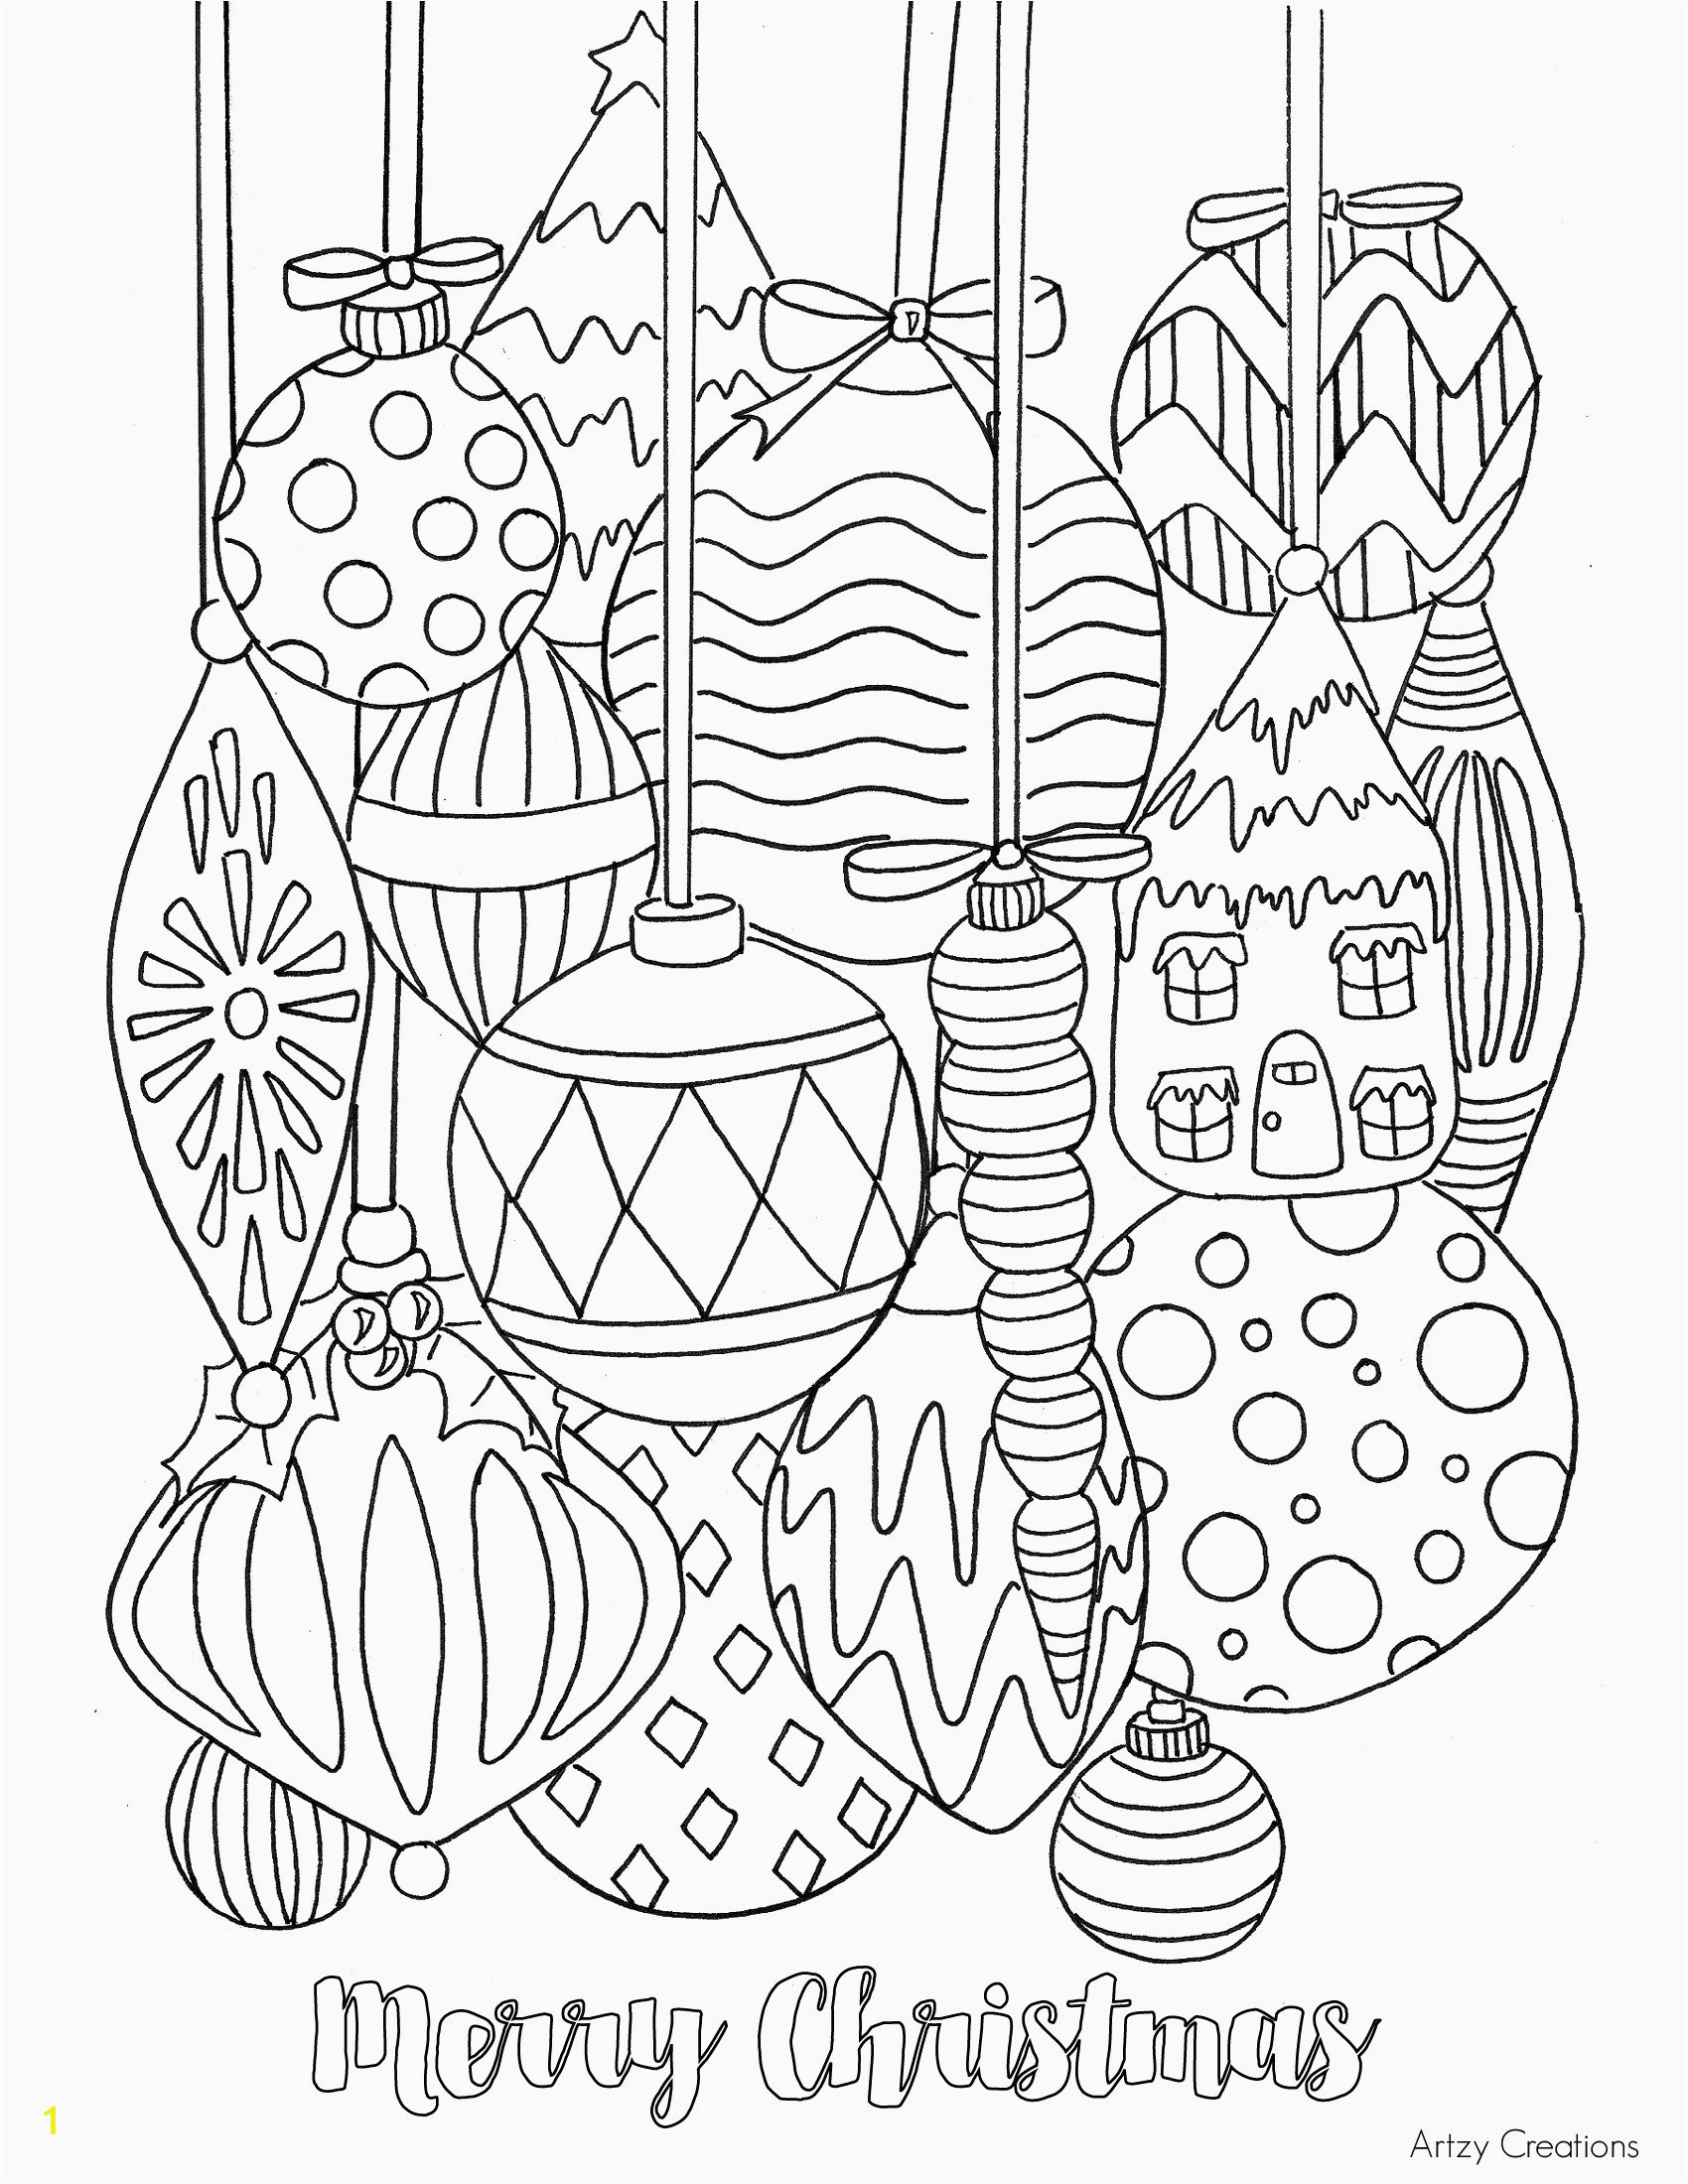 4 H Coloring Pages Shrek 4 Coloring Pages Kids Coloring Pages Draw Coloring Pages New